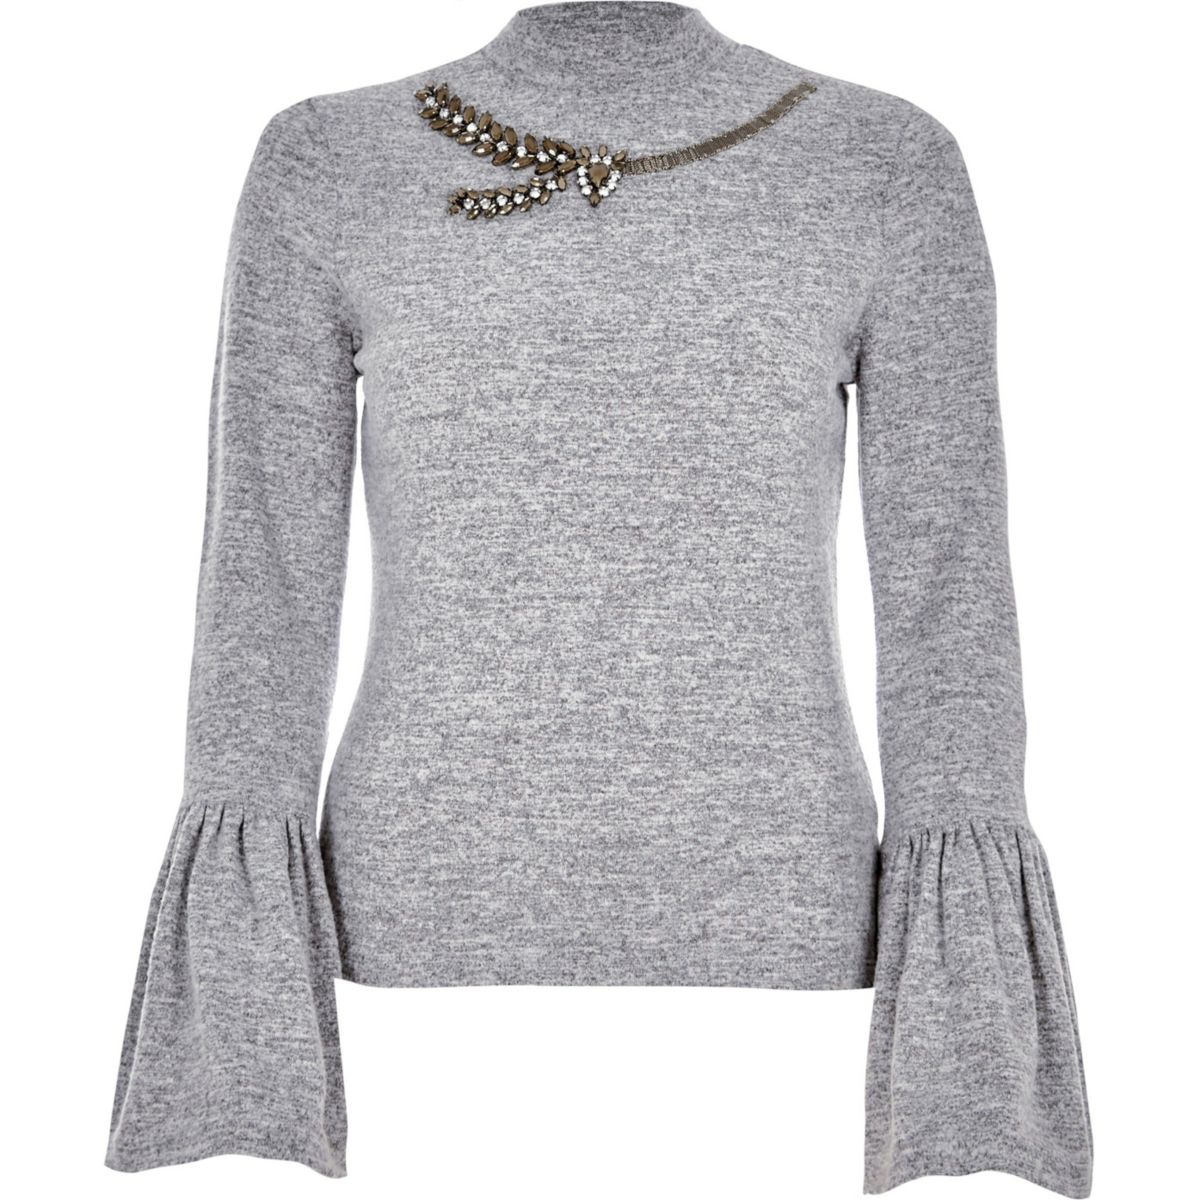 Marl grey bell sleeve embellished neck top